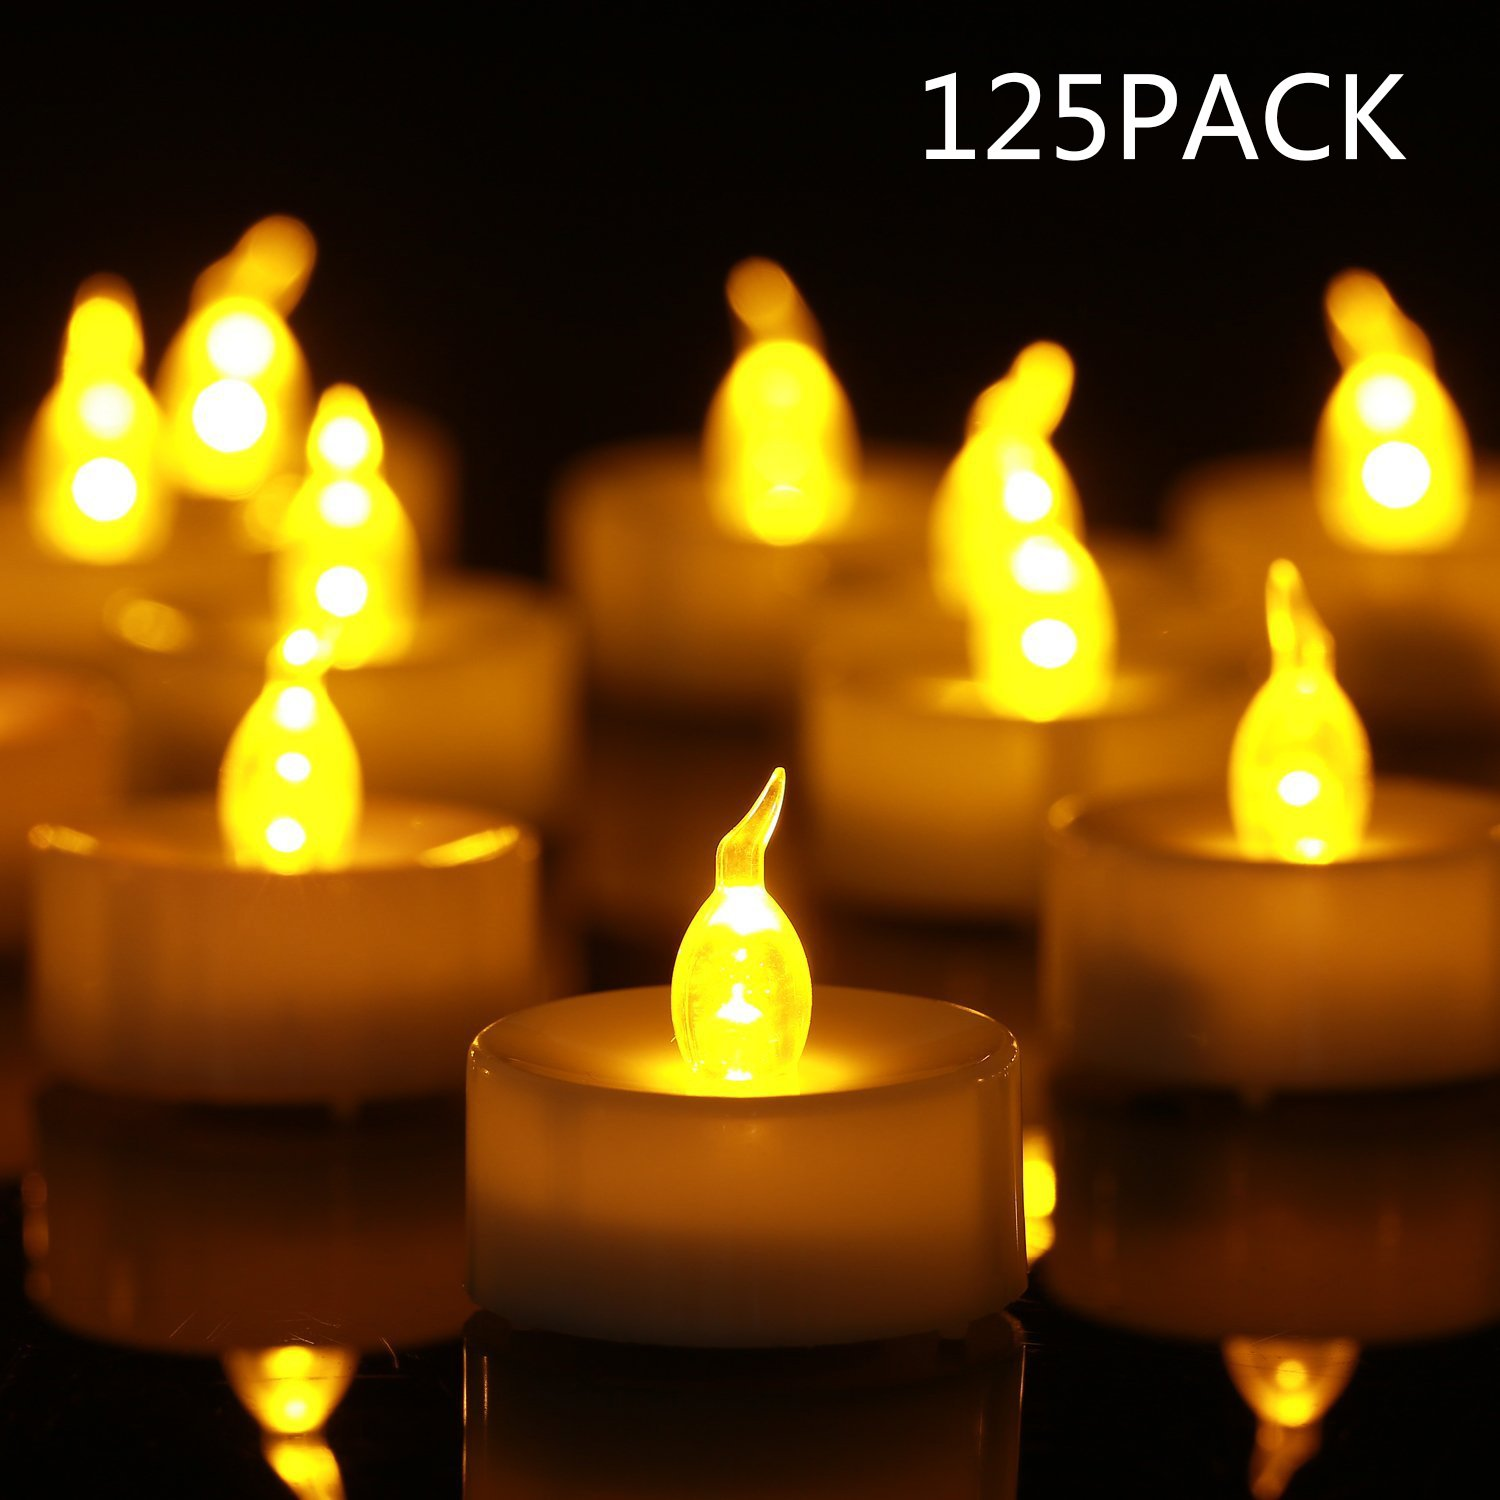 Tea Light Flameless LED Tea Lights Candles (125 Pack,$0.223/Count), Flickering Warm Yellow 100+ Hours Battery-powered Tealight Candle. Ideal for Party, Wedding, Birthday, Gifts and Home Decoration